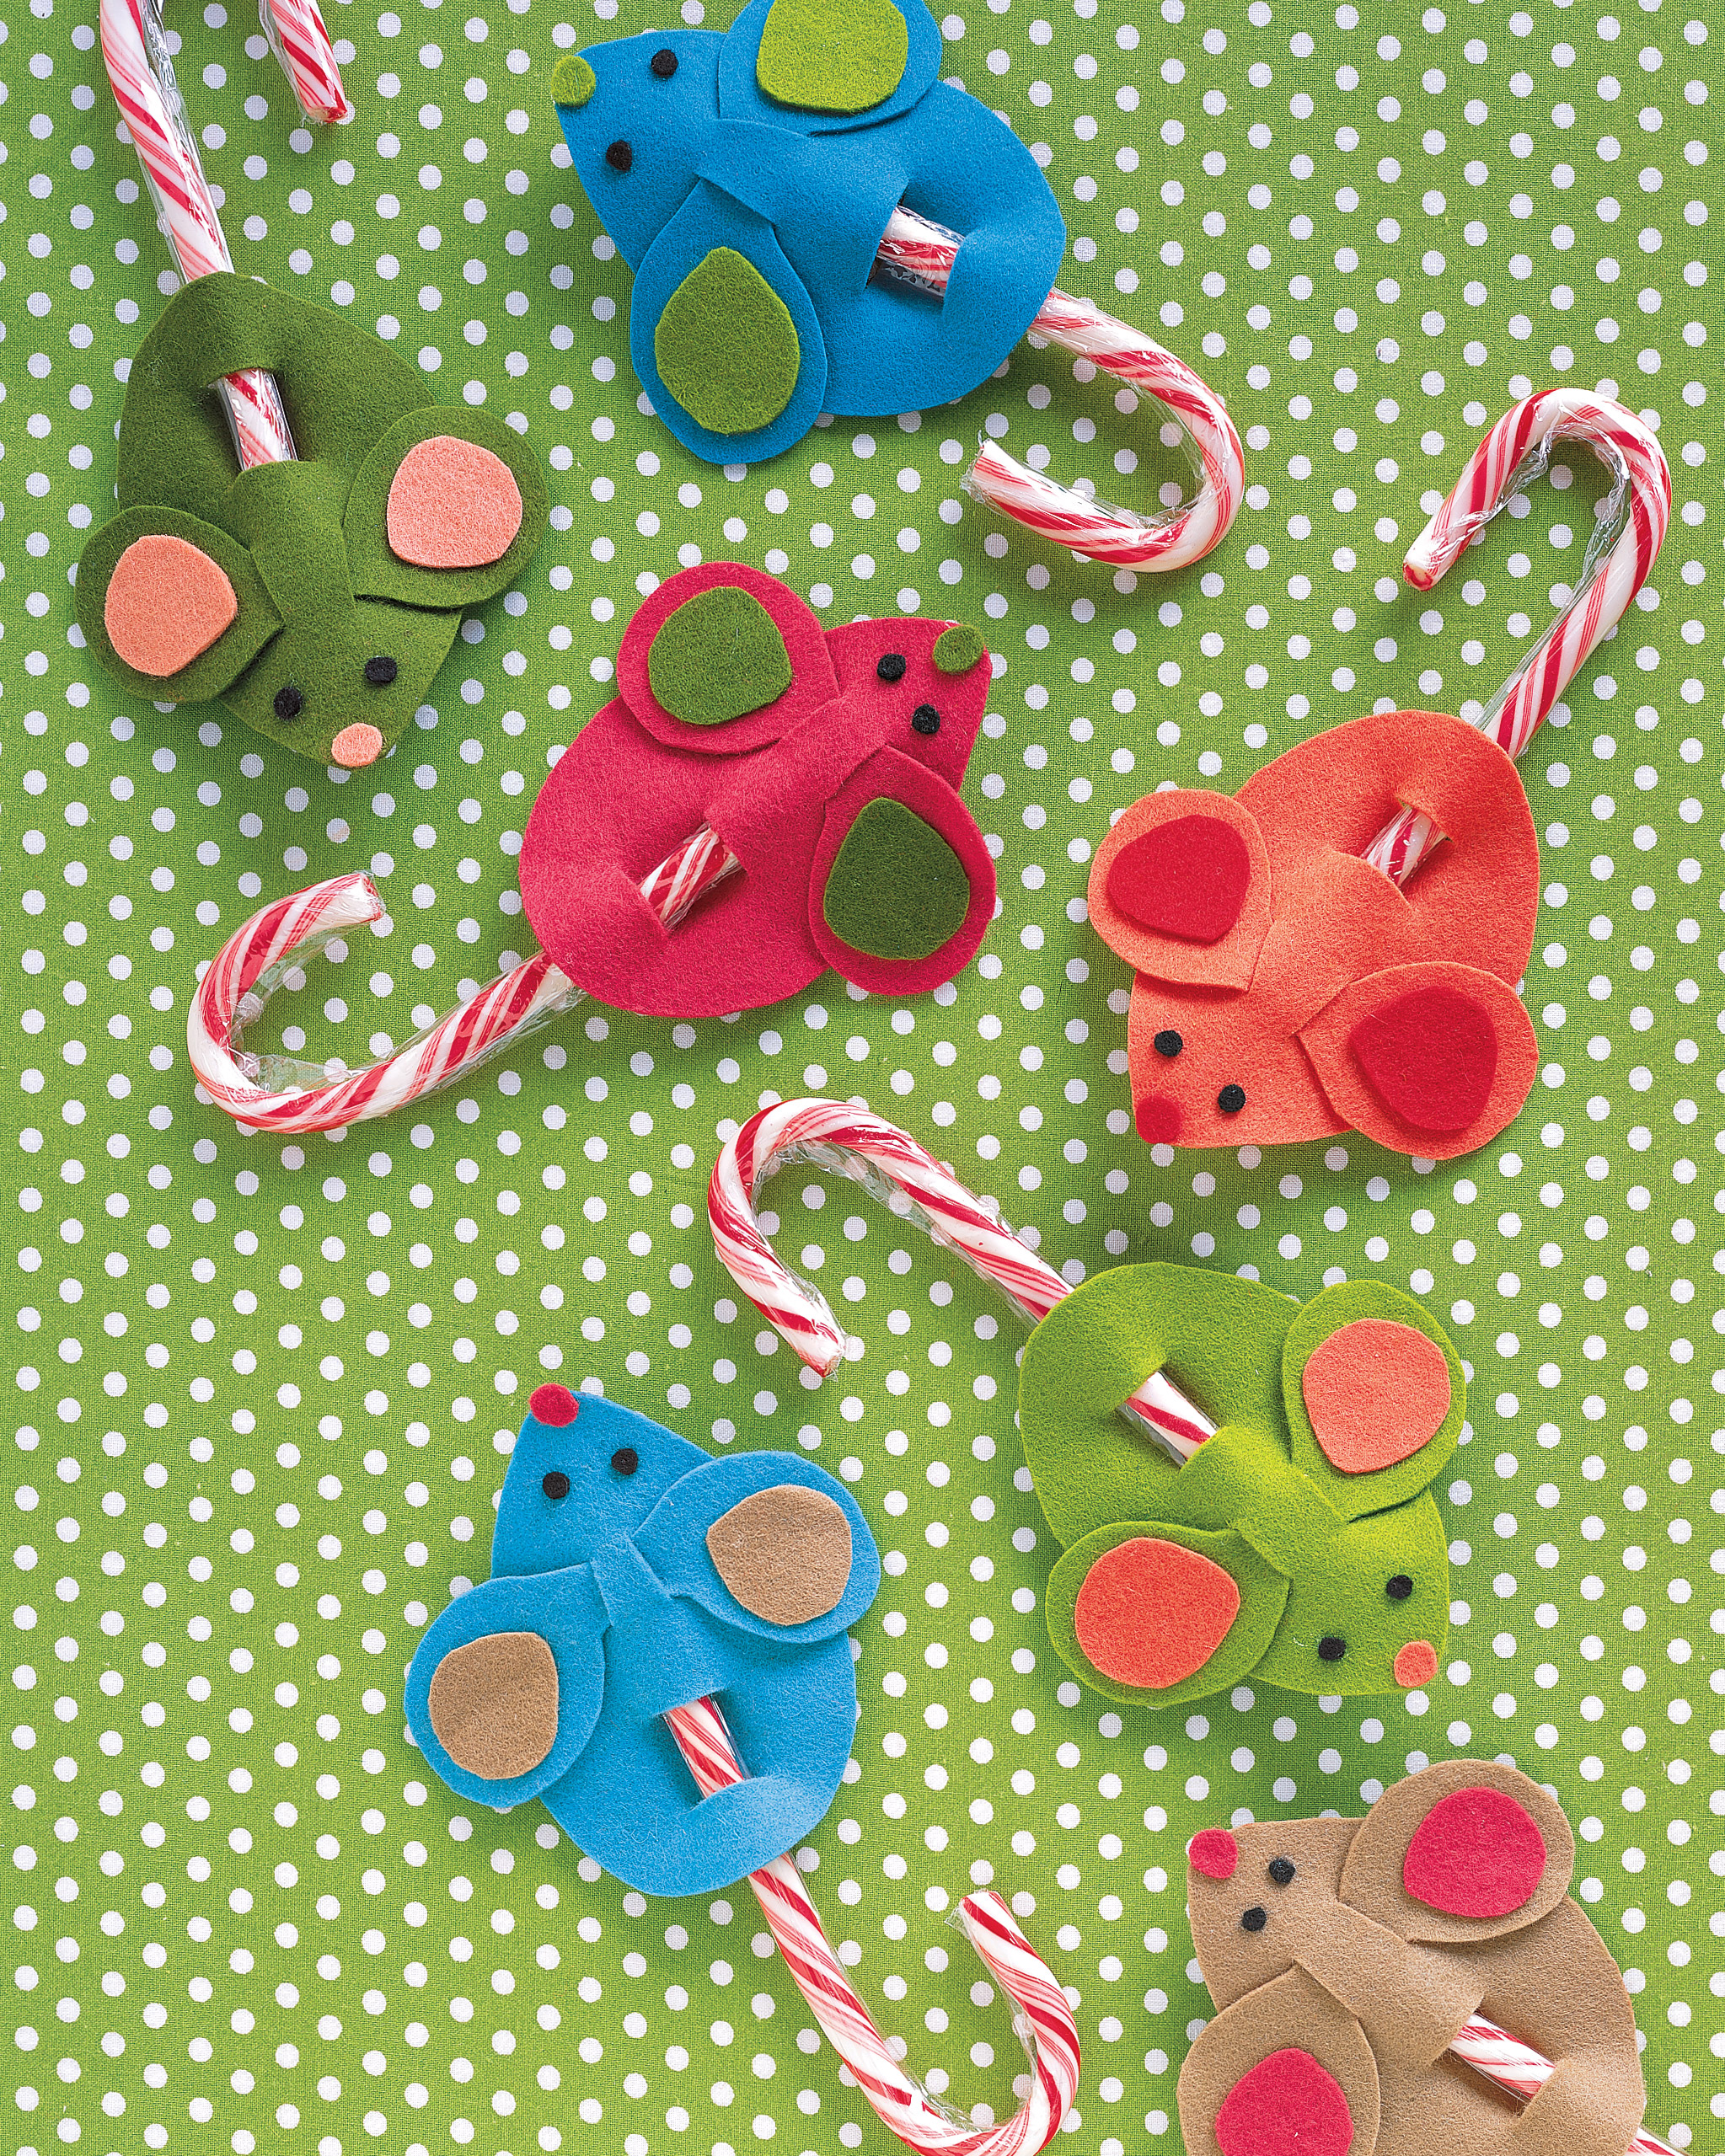 Kids Christmas Crafts.17 Affordable Christmas Crafts For The Whole Family Martha